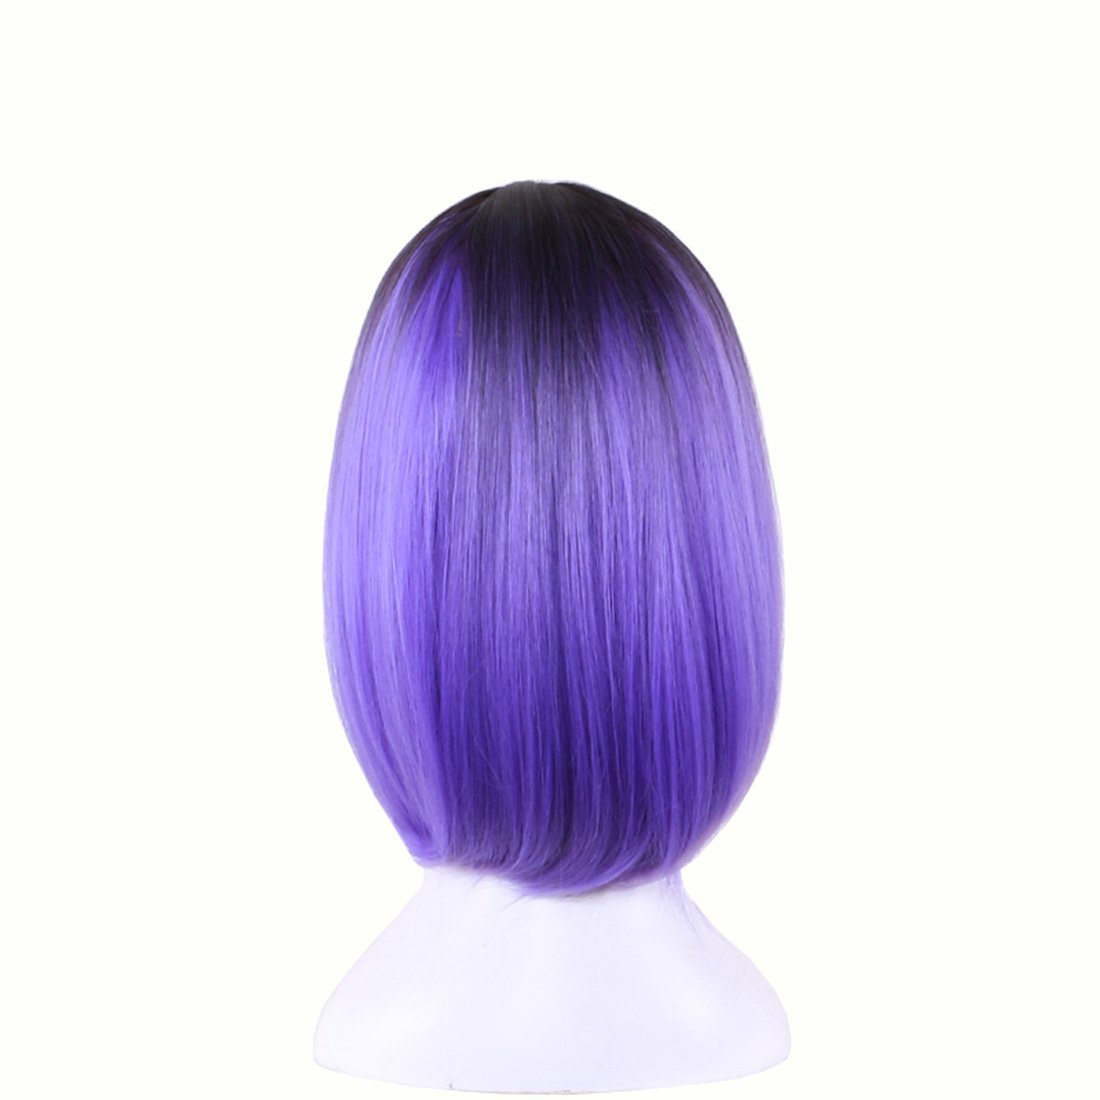 Wigood 12 Ombre Color Bob Female Wig Short Straight Purple Hair with Dark Roots Cosplay Wig(Ombre Purple)